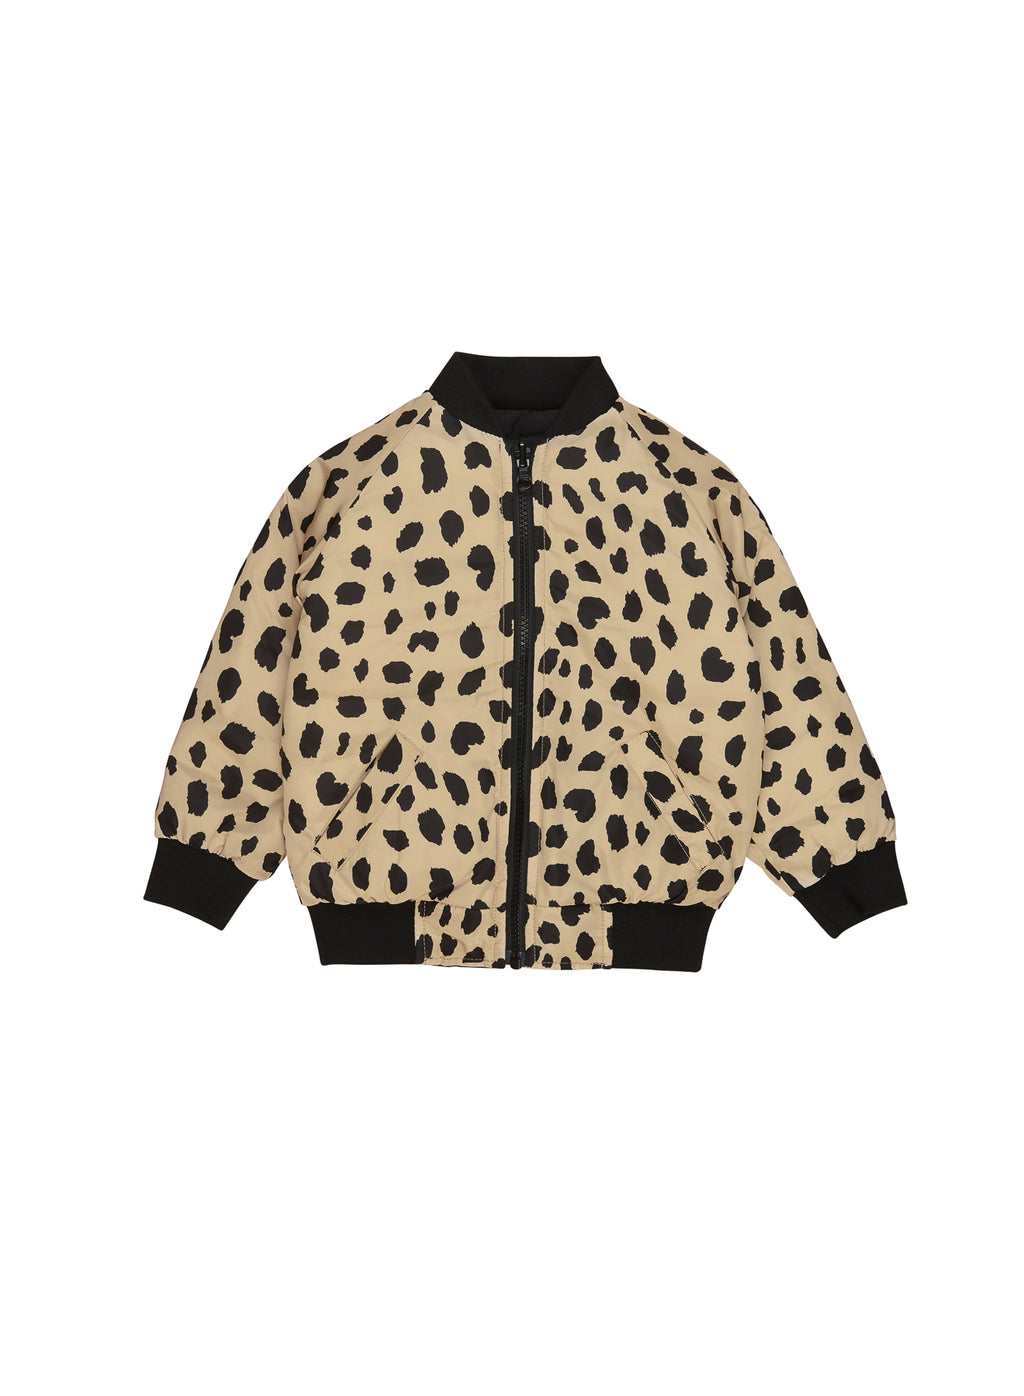 Huxbaby_Animal Spot Reversible Bomber - The Child Hood